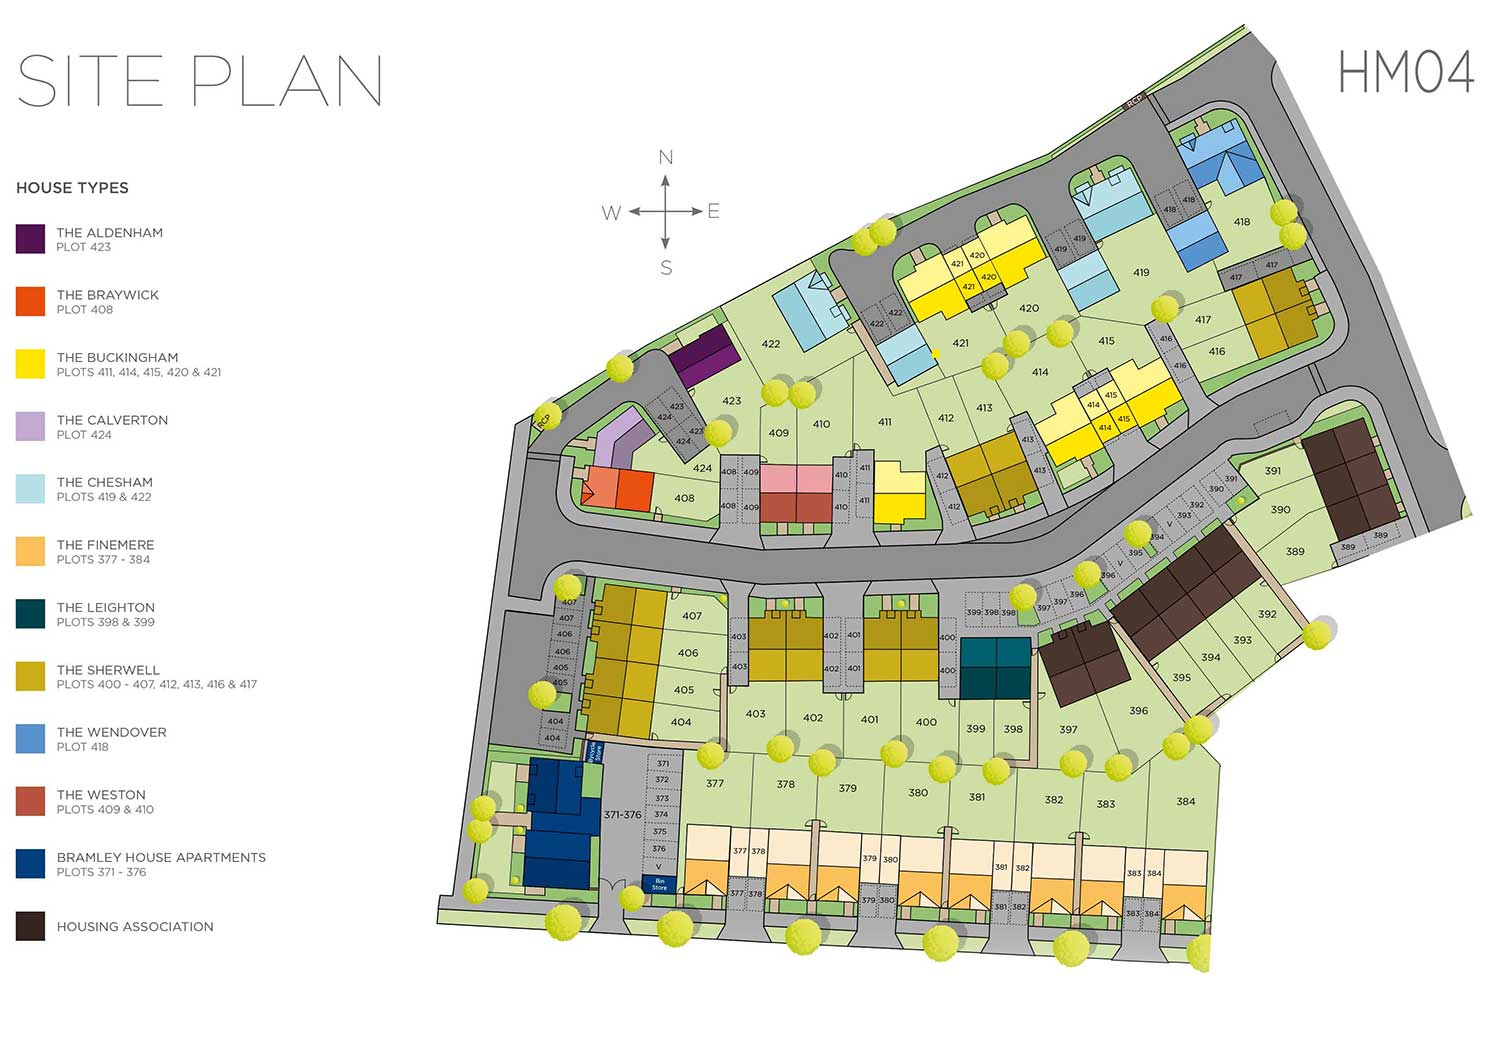 Plot 381 – The Finemere Siteplan